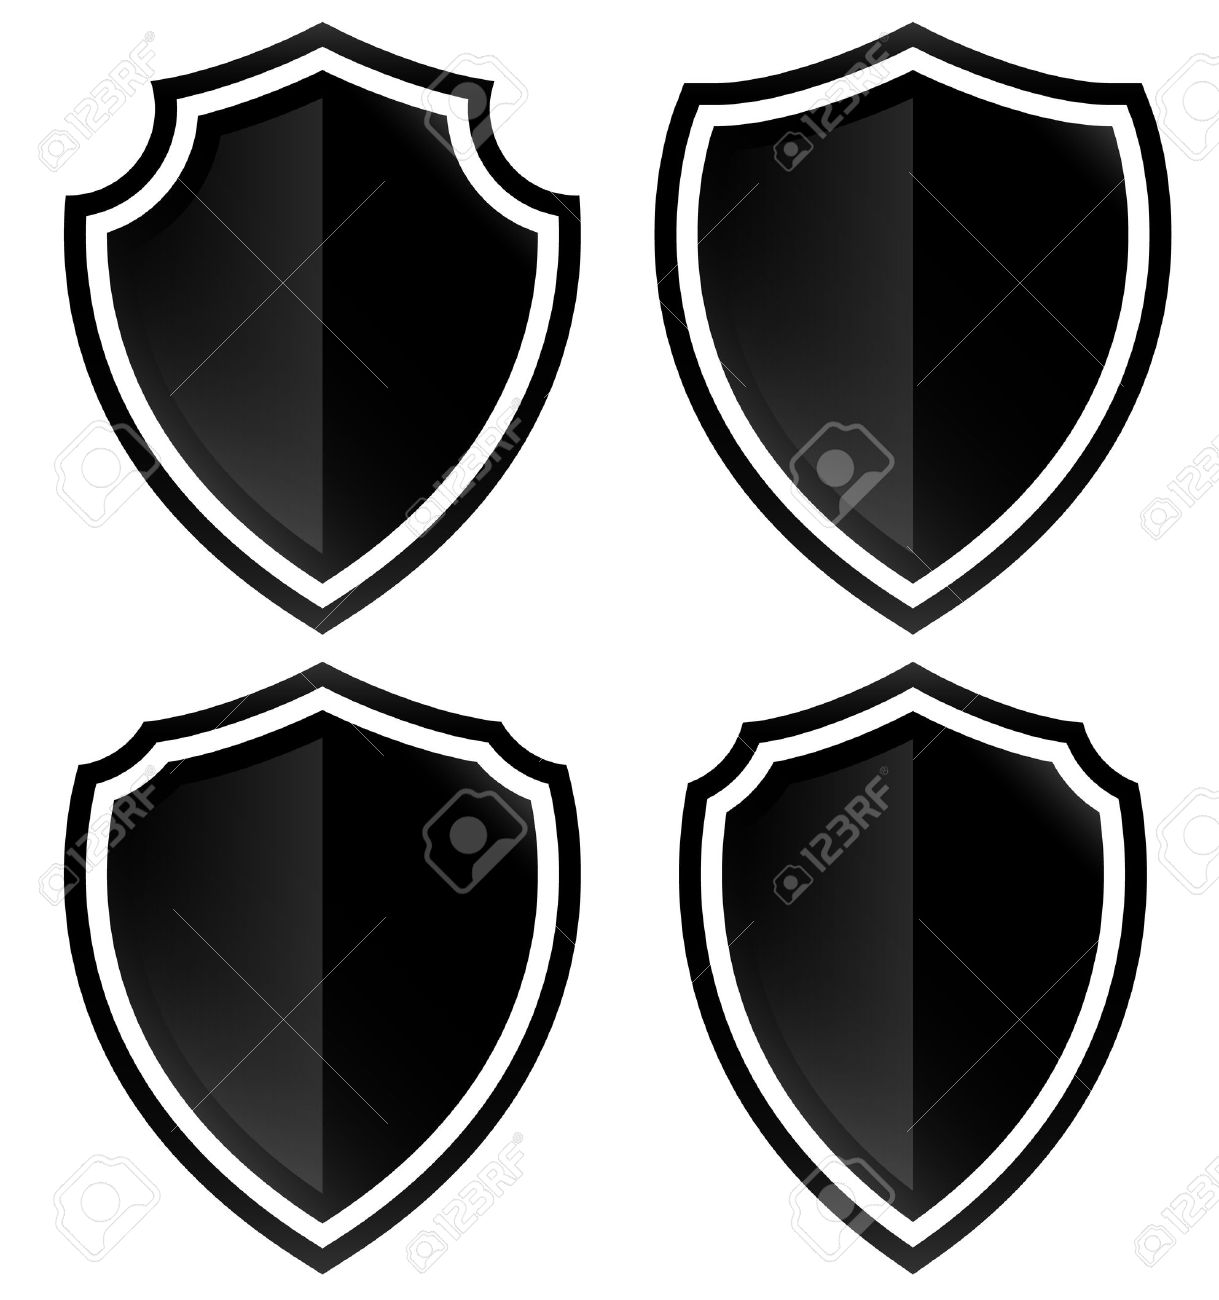 Different Shield Shapes Stock Vector